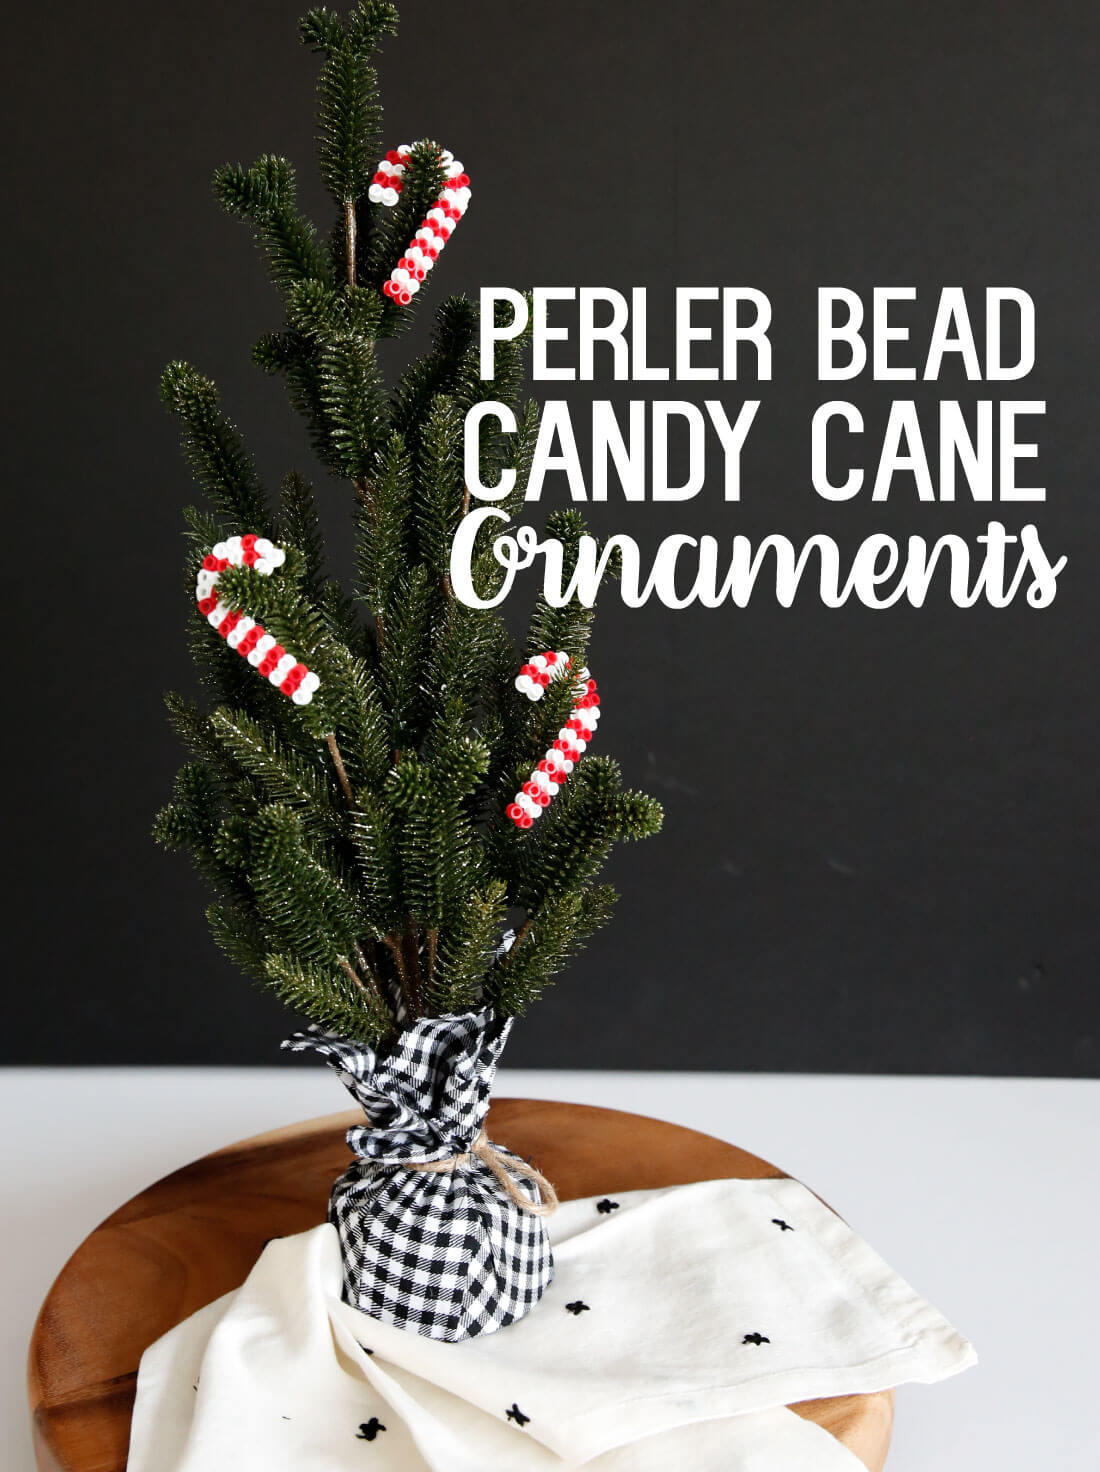 DIY Ornaments made with perler beads. Make these cute candy cane ornaments! www.thirtyhandmadedays.com